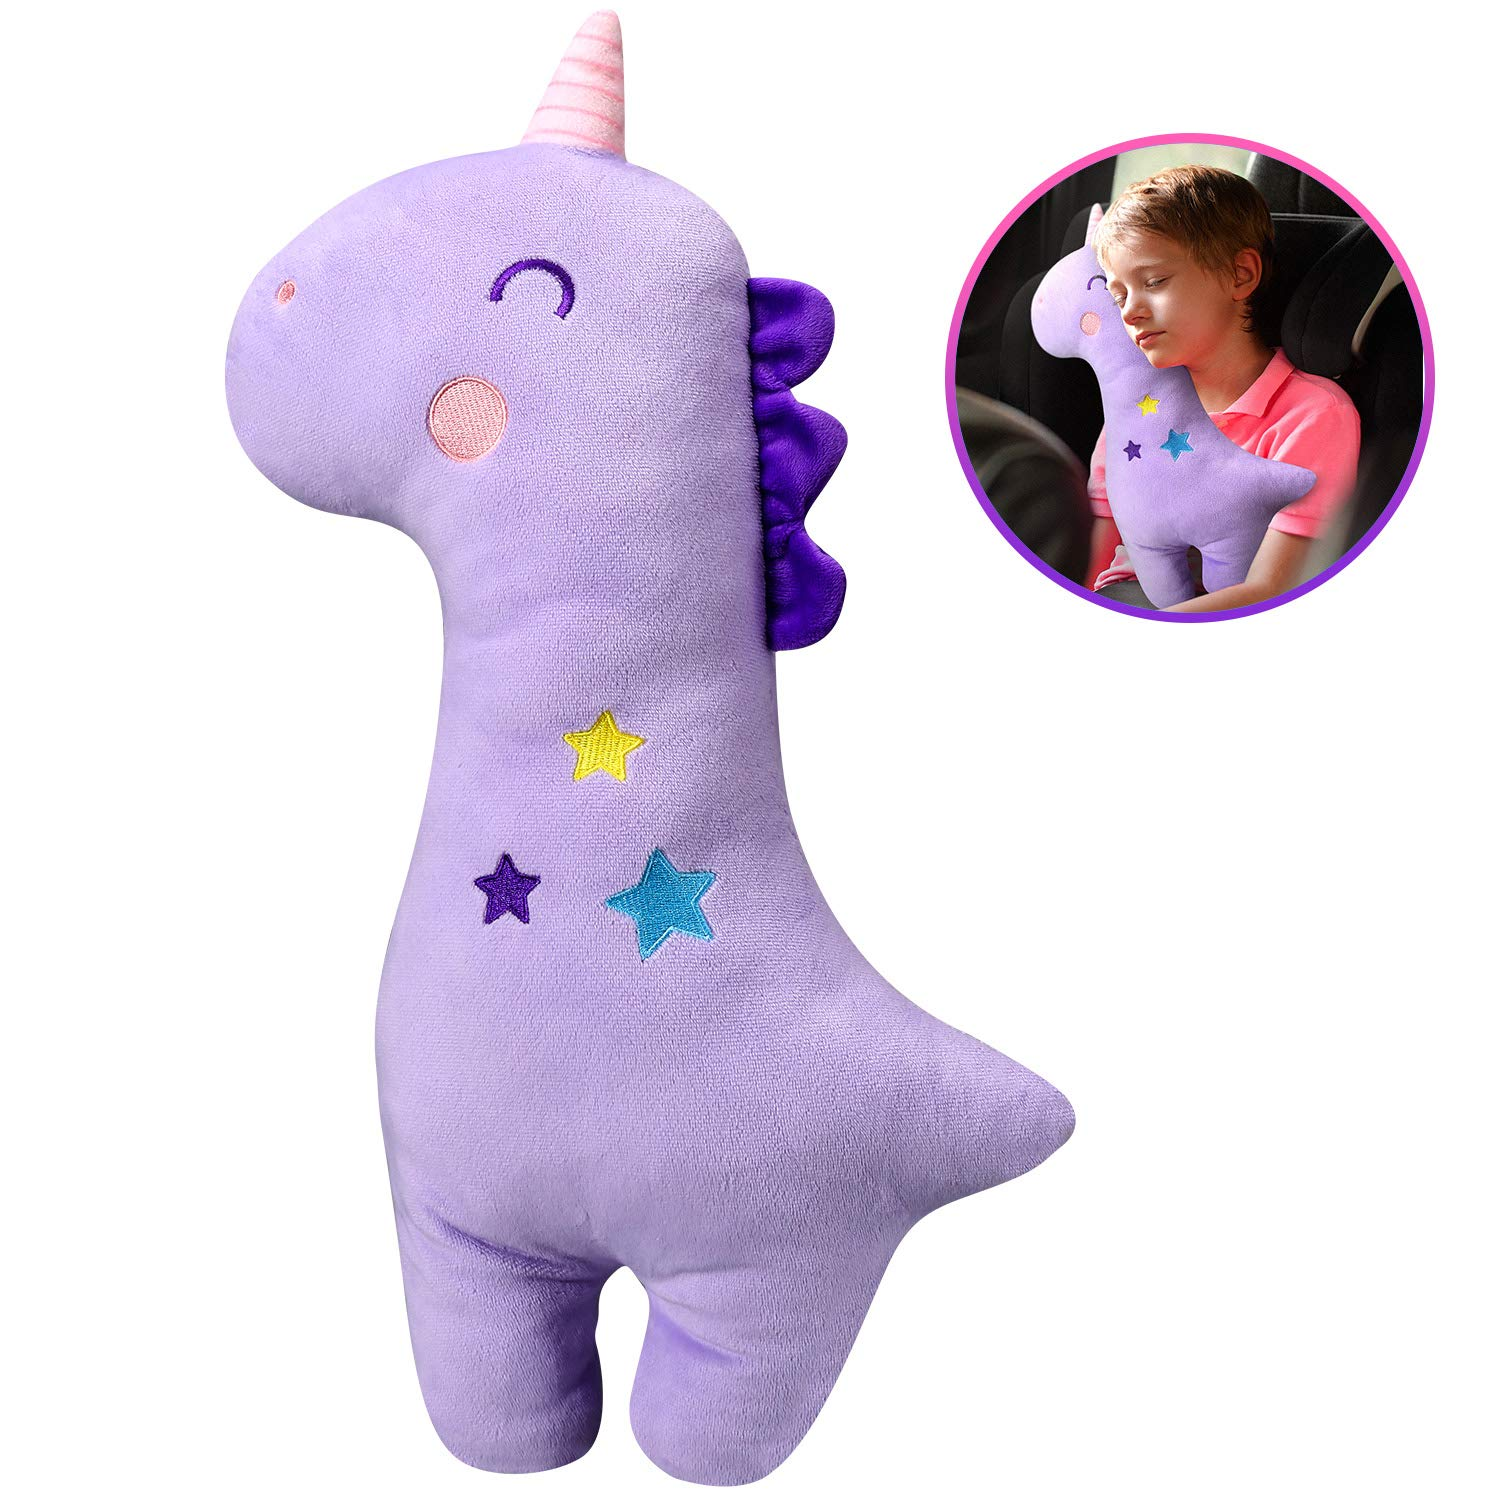 Unicorn Seat Belt Pillow Kids - Unicorn Seat Belt Cover, Vehicle Shoulder Pads, Safety Belt Protector Cushion for Kids, Animal Travel Pillow (Purple) by Farochy